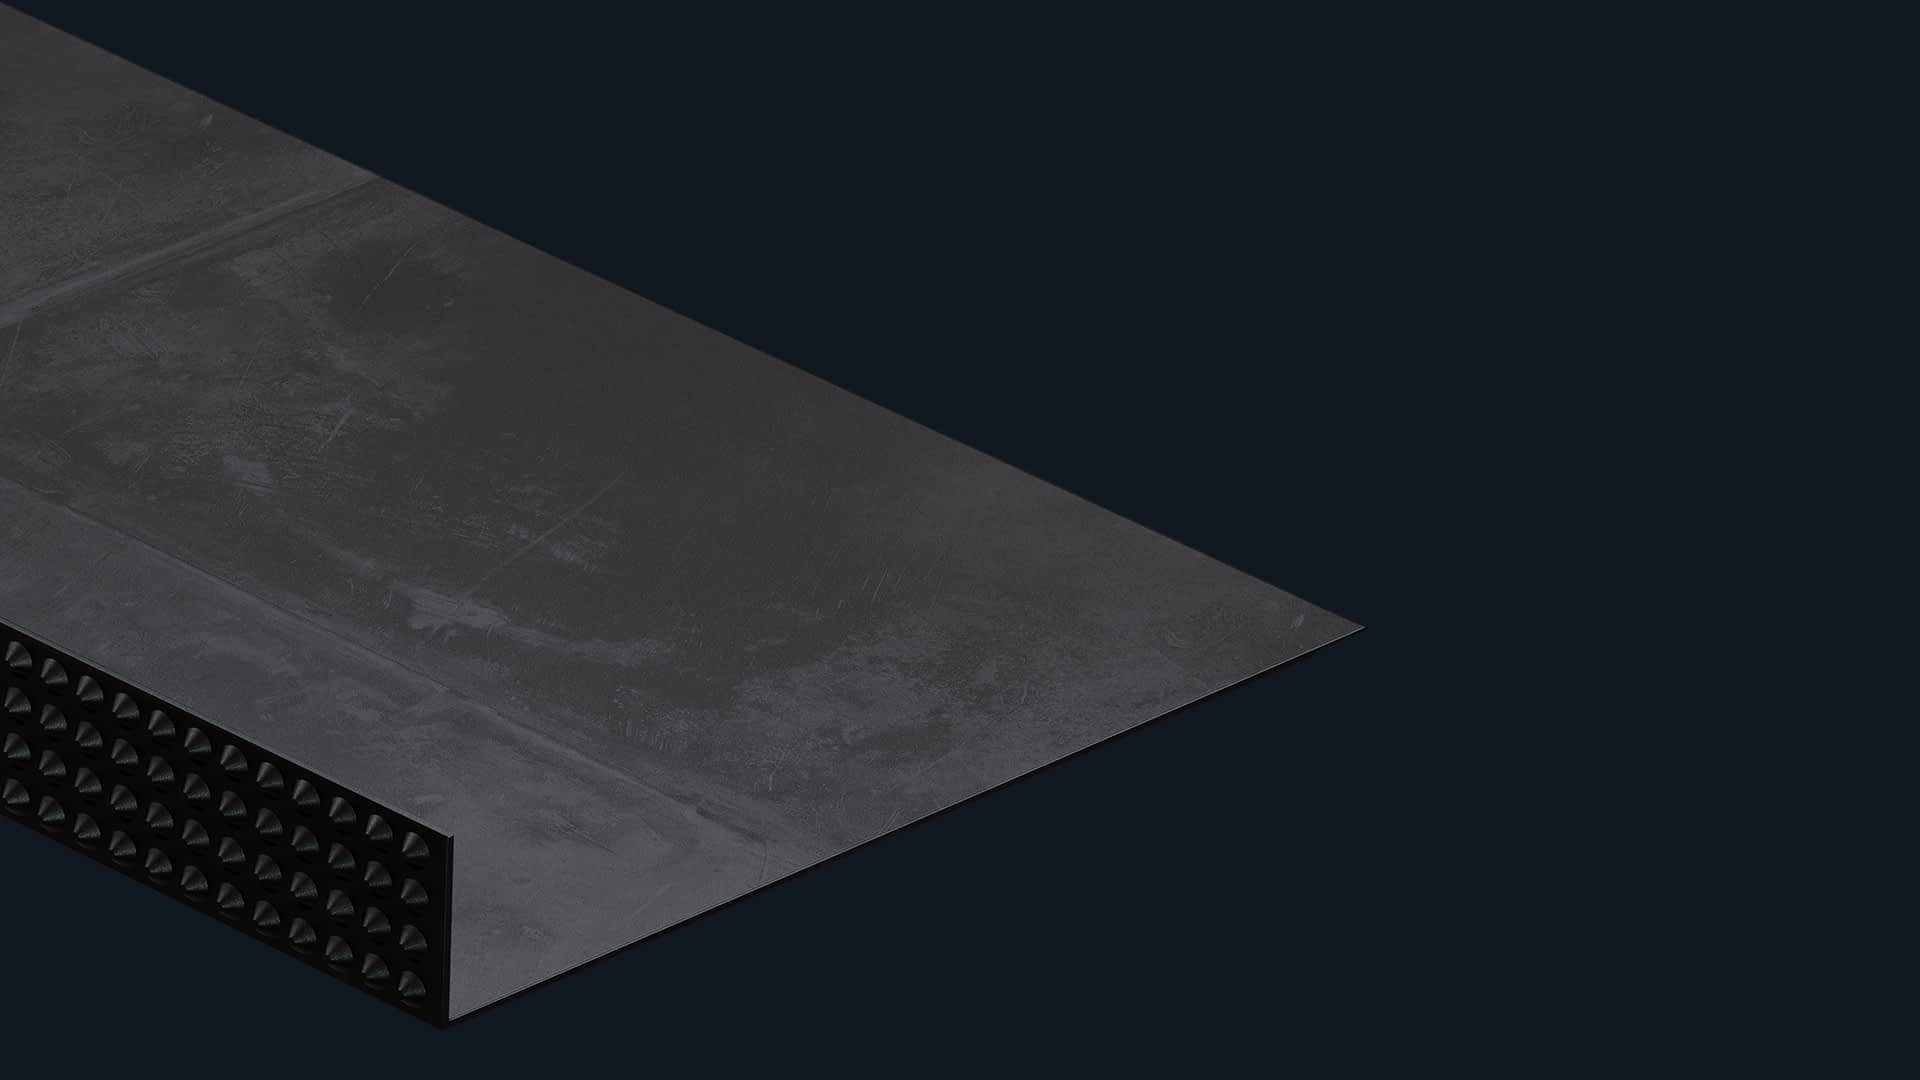 tiantie-group_products_track-mats_slider_1920x1080